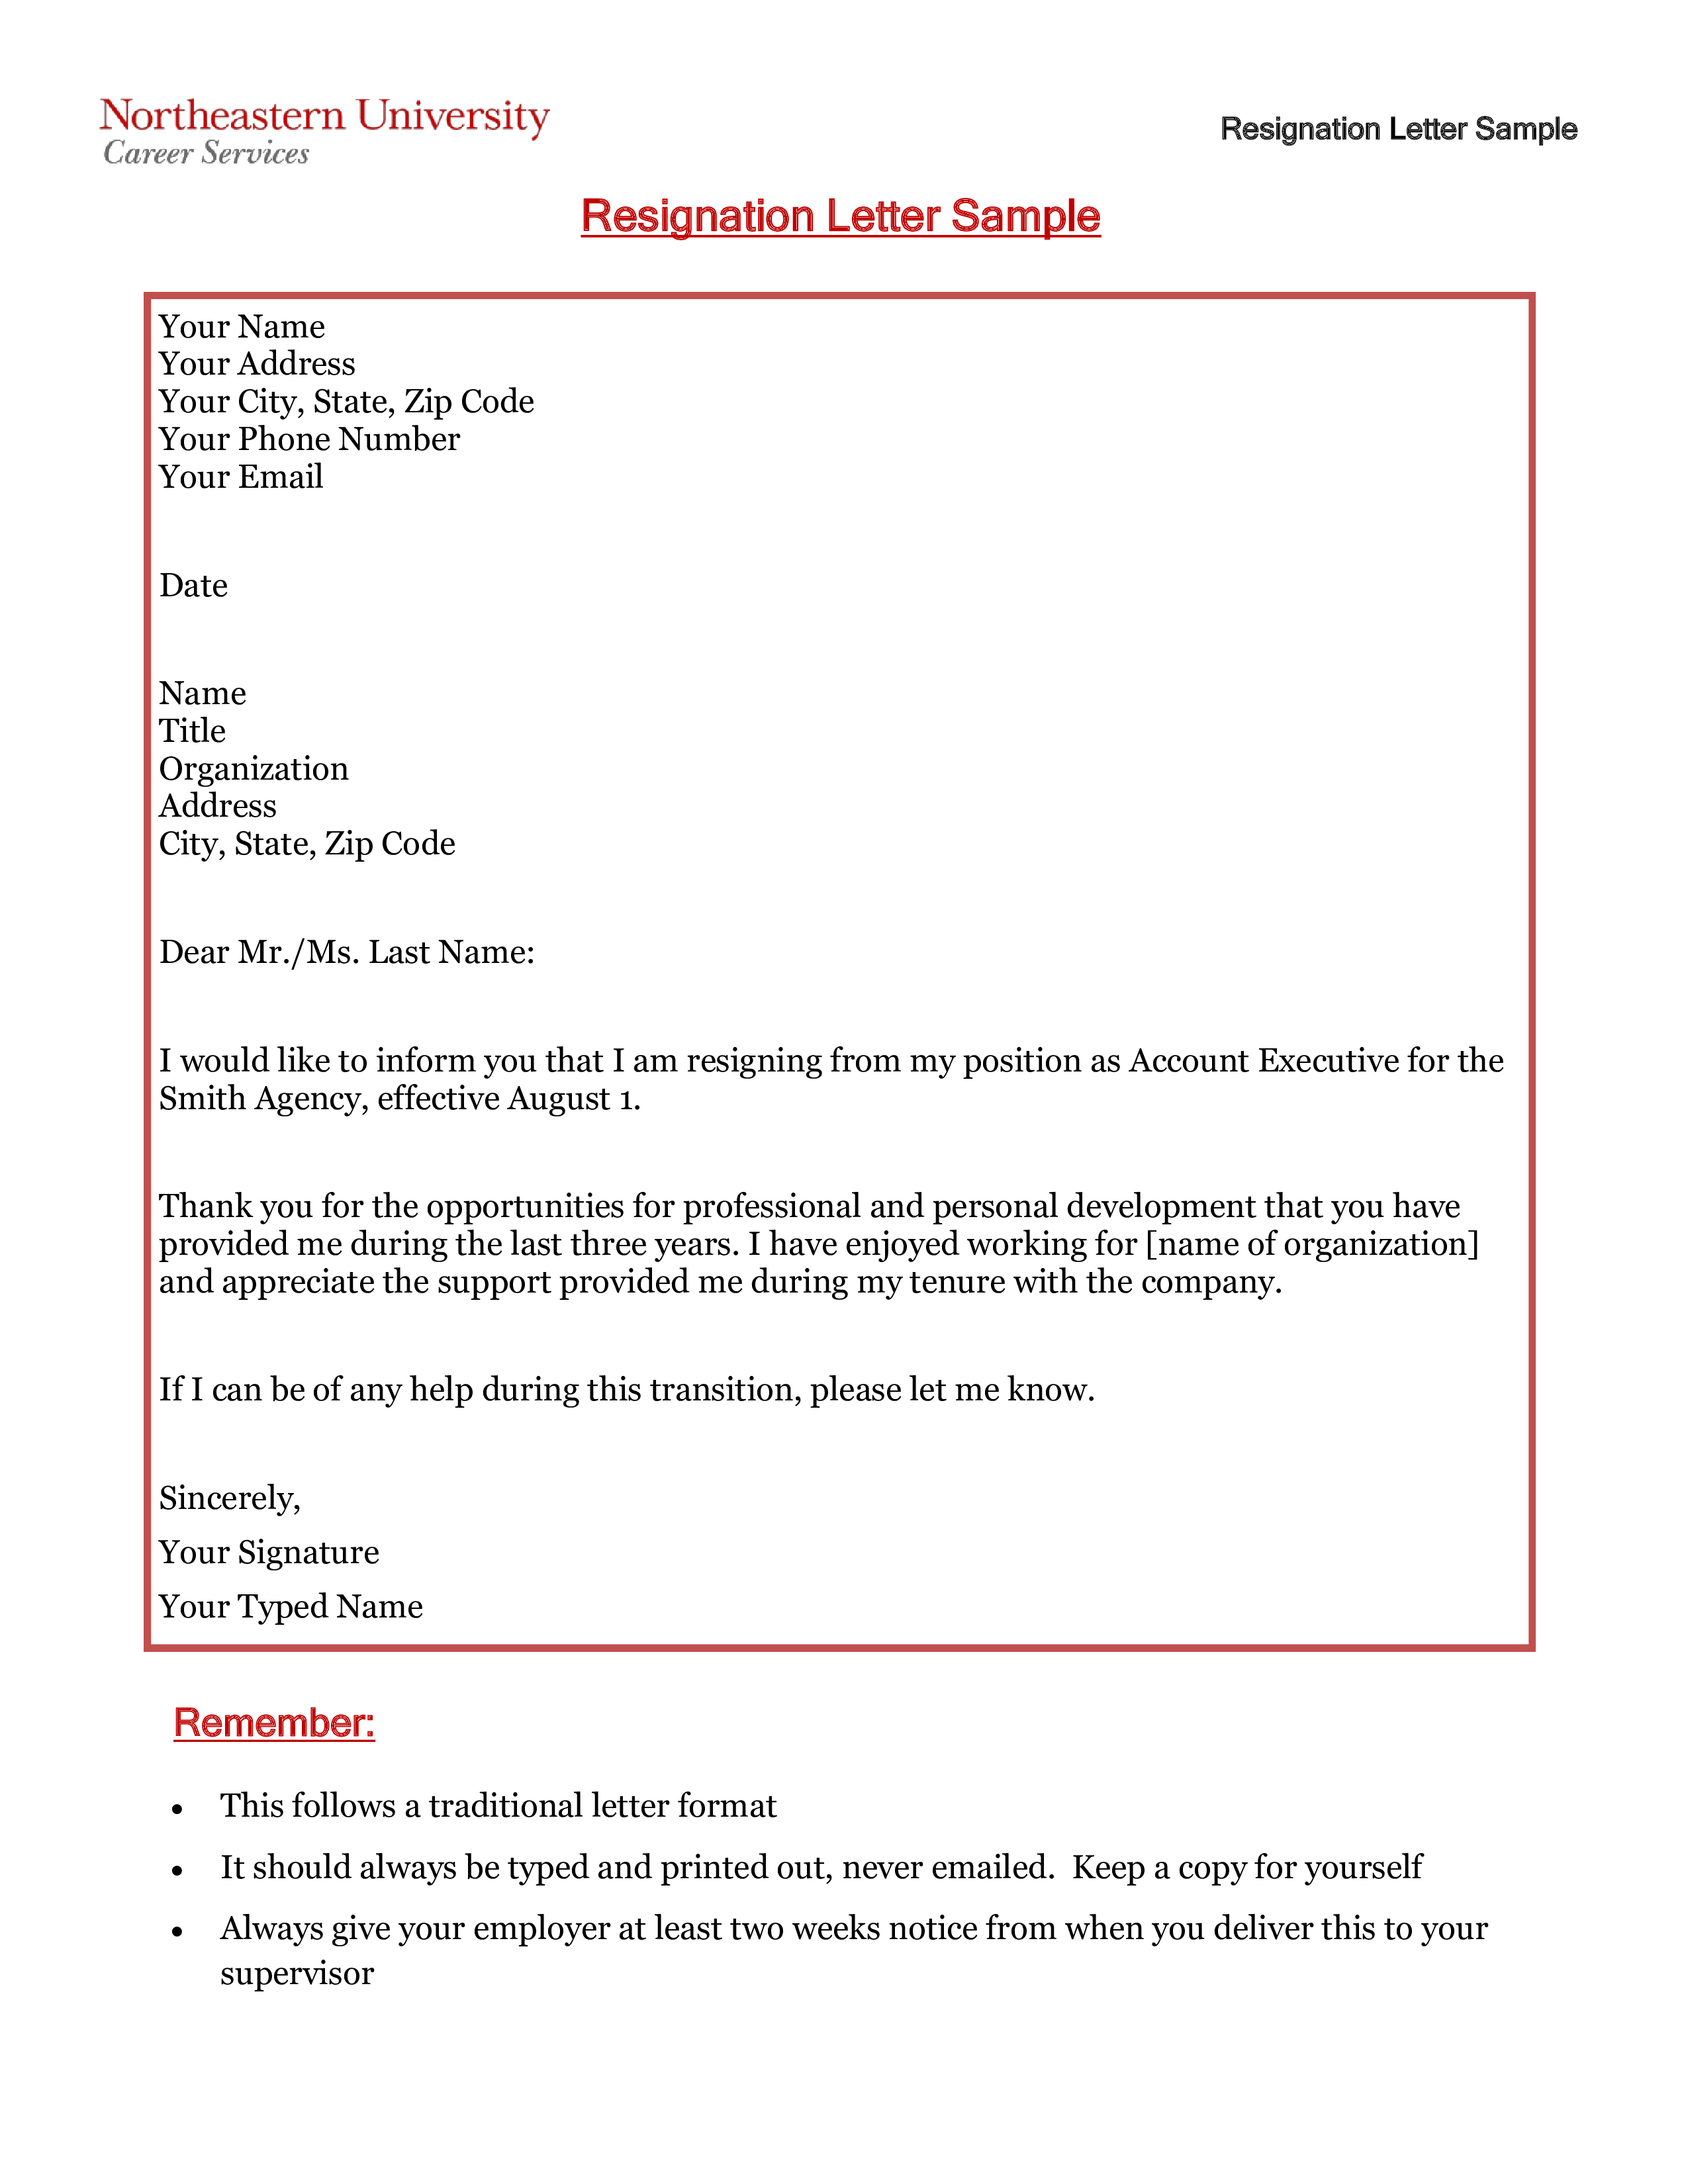 Free Professional Business Resignation Letter | Templates at ...